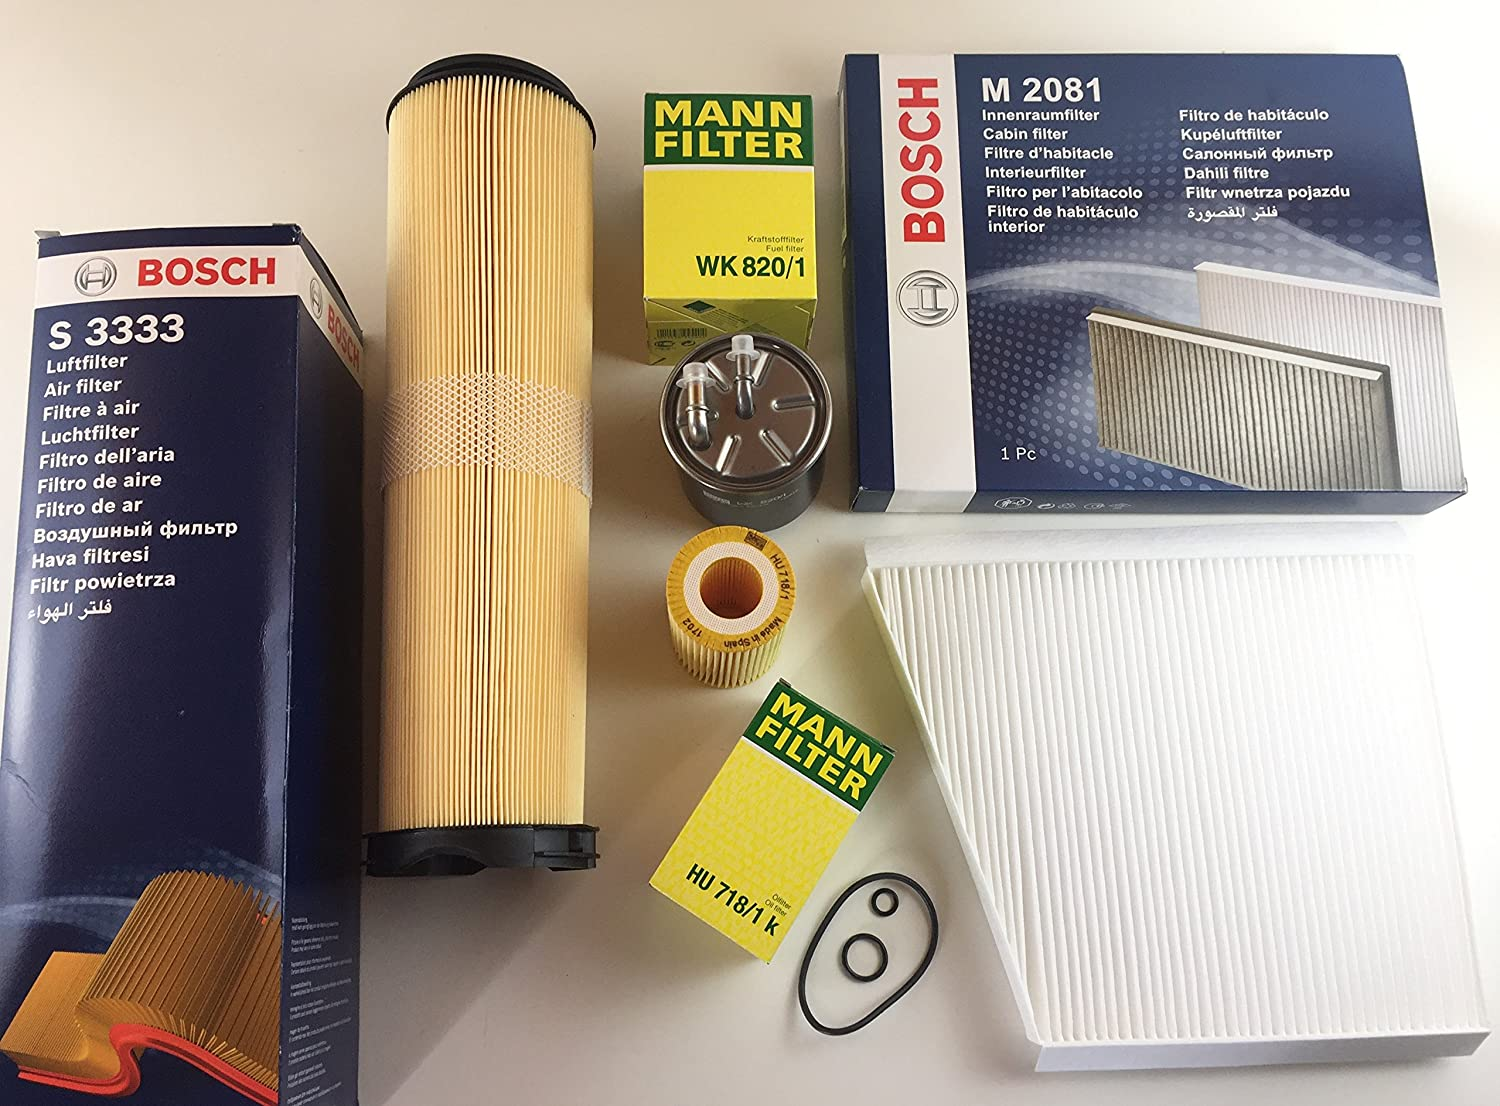 Mann Bosch Inspection Kit Oil Filter Air Fuel W211 S211 200 Cdi 220 270 Pollen Car Motorbike